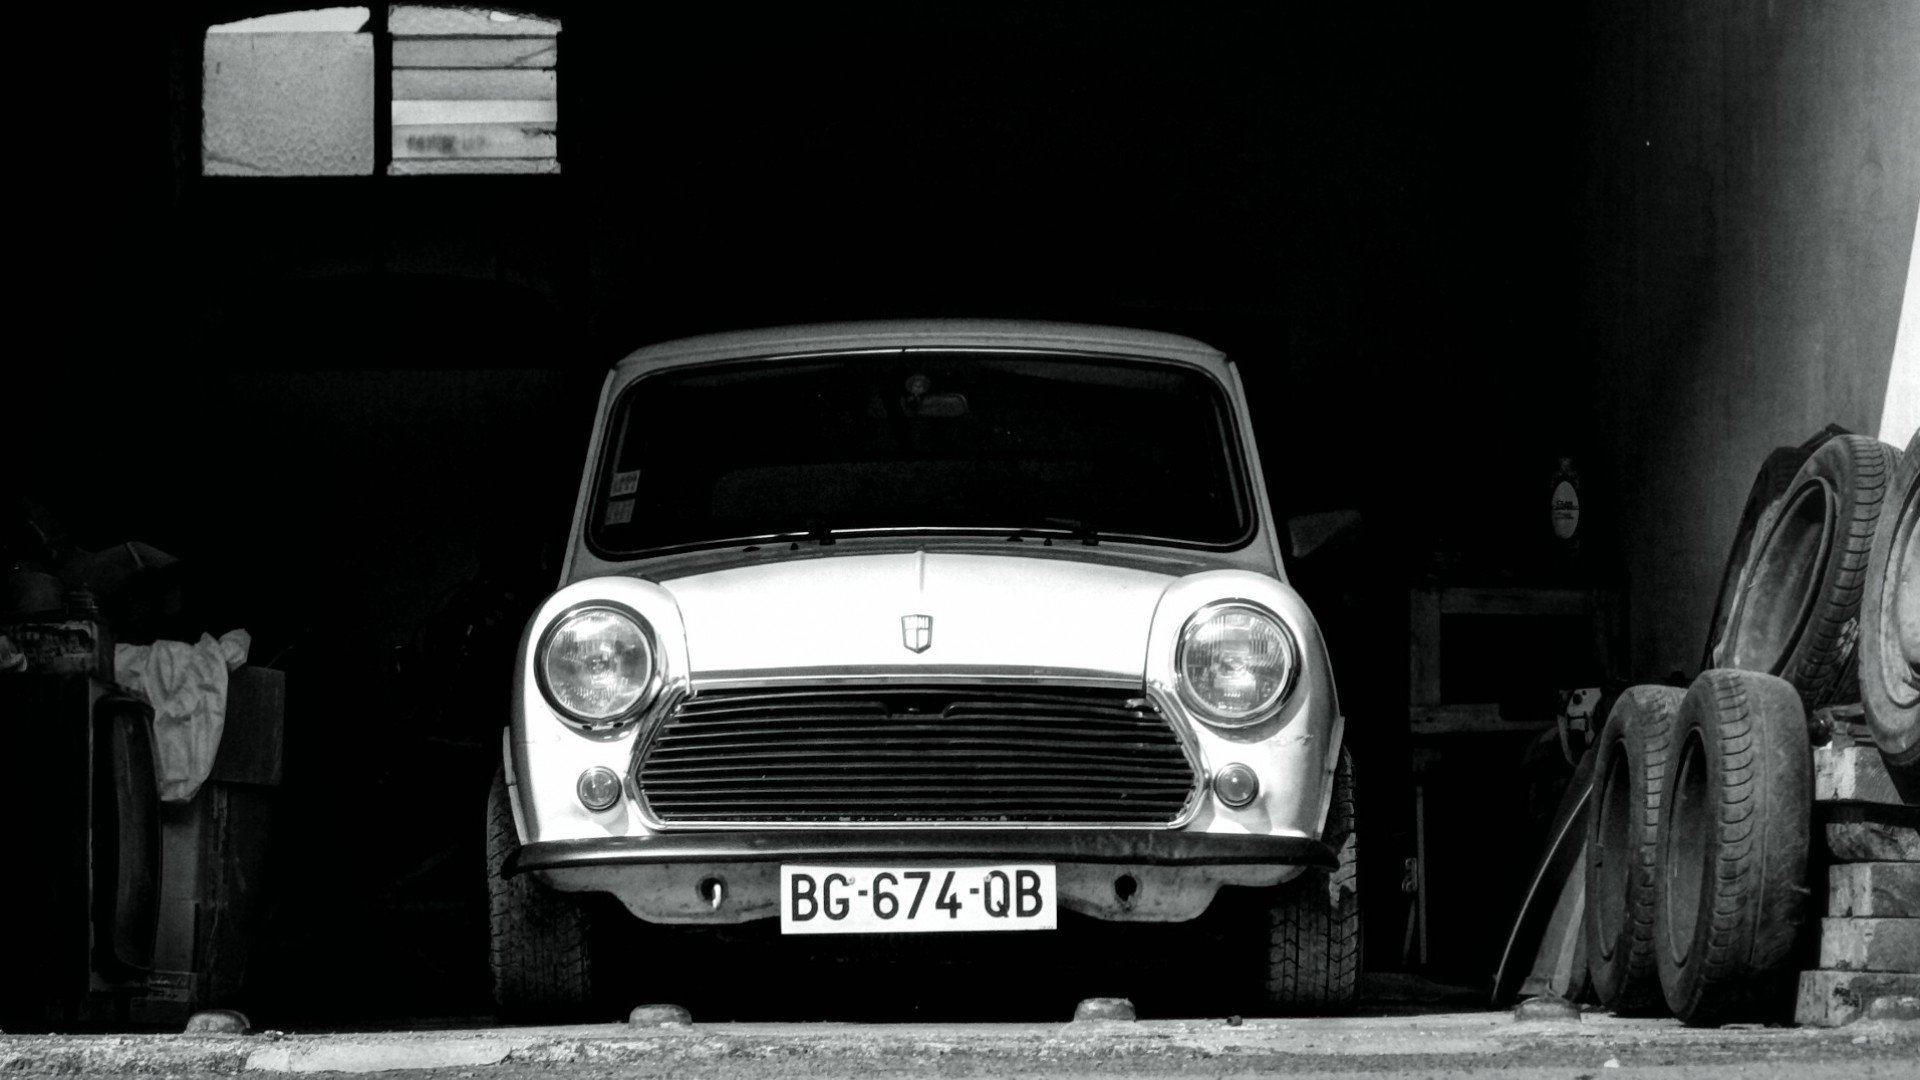 Old Mini Cooper Hd Wallpapers The Galleries Of Hd Wallpaper